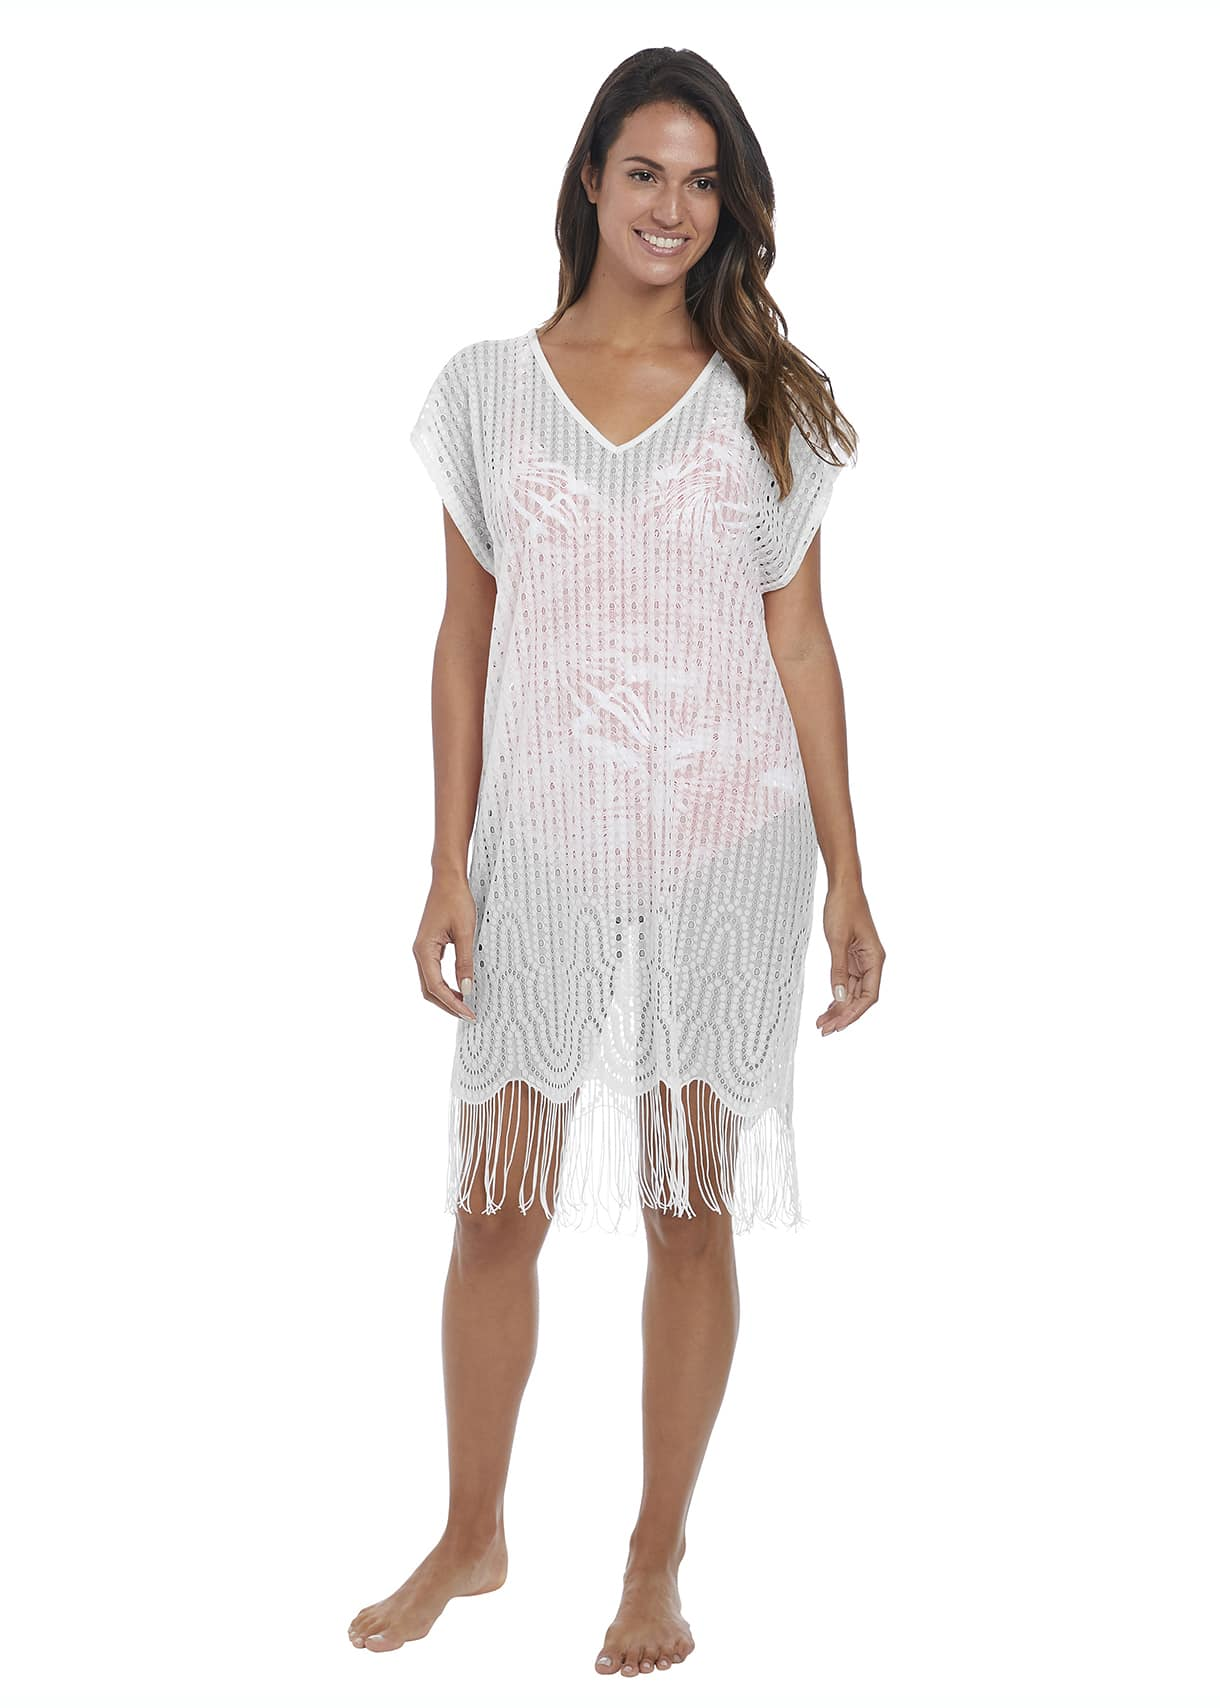 Fantasie Antheia Tunic in White m